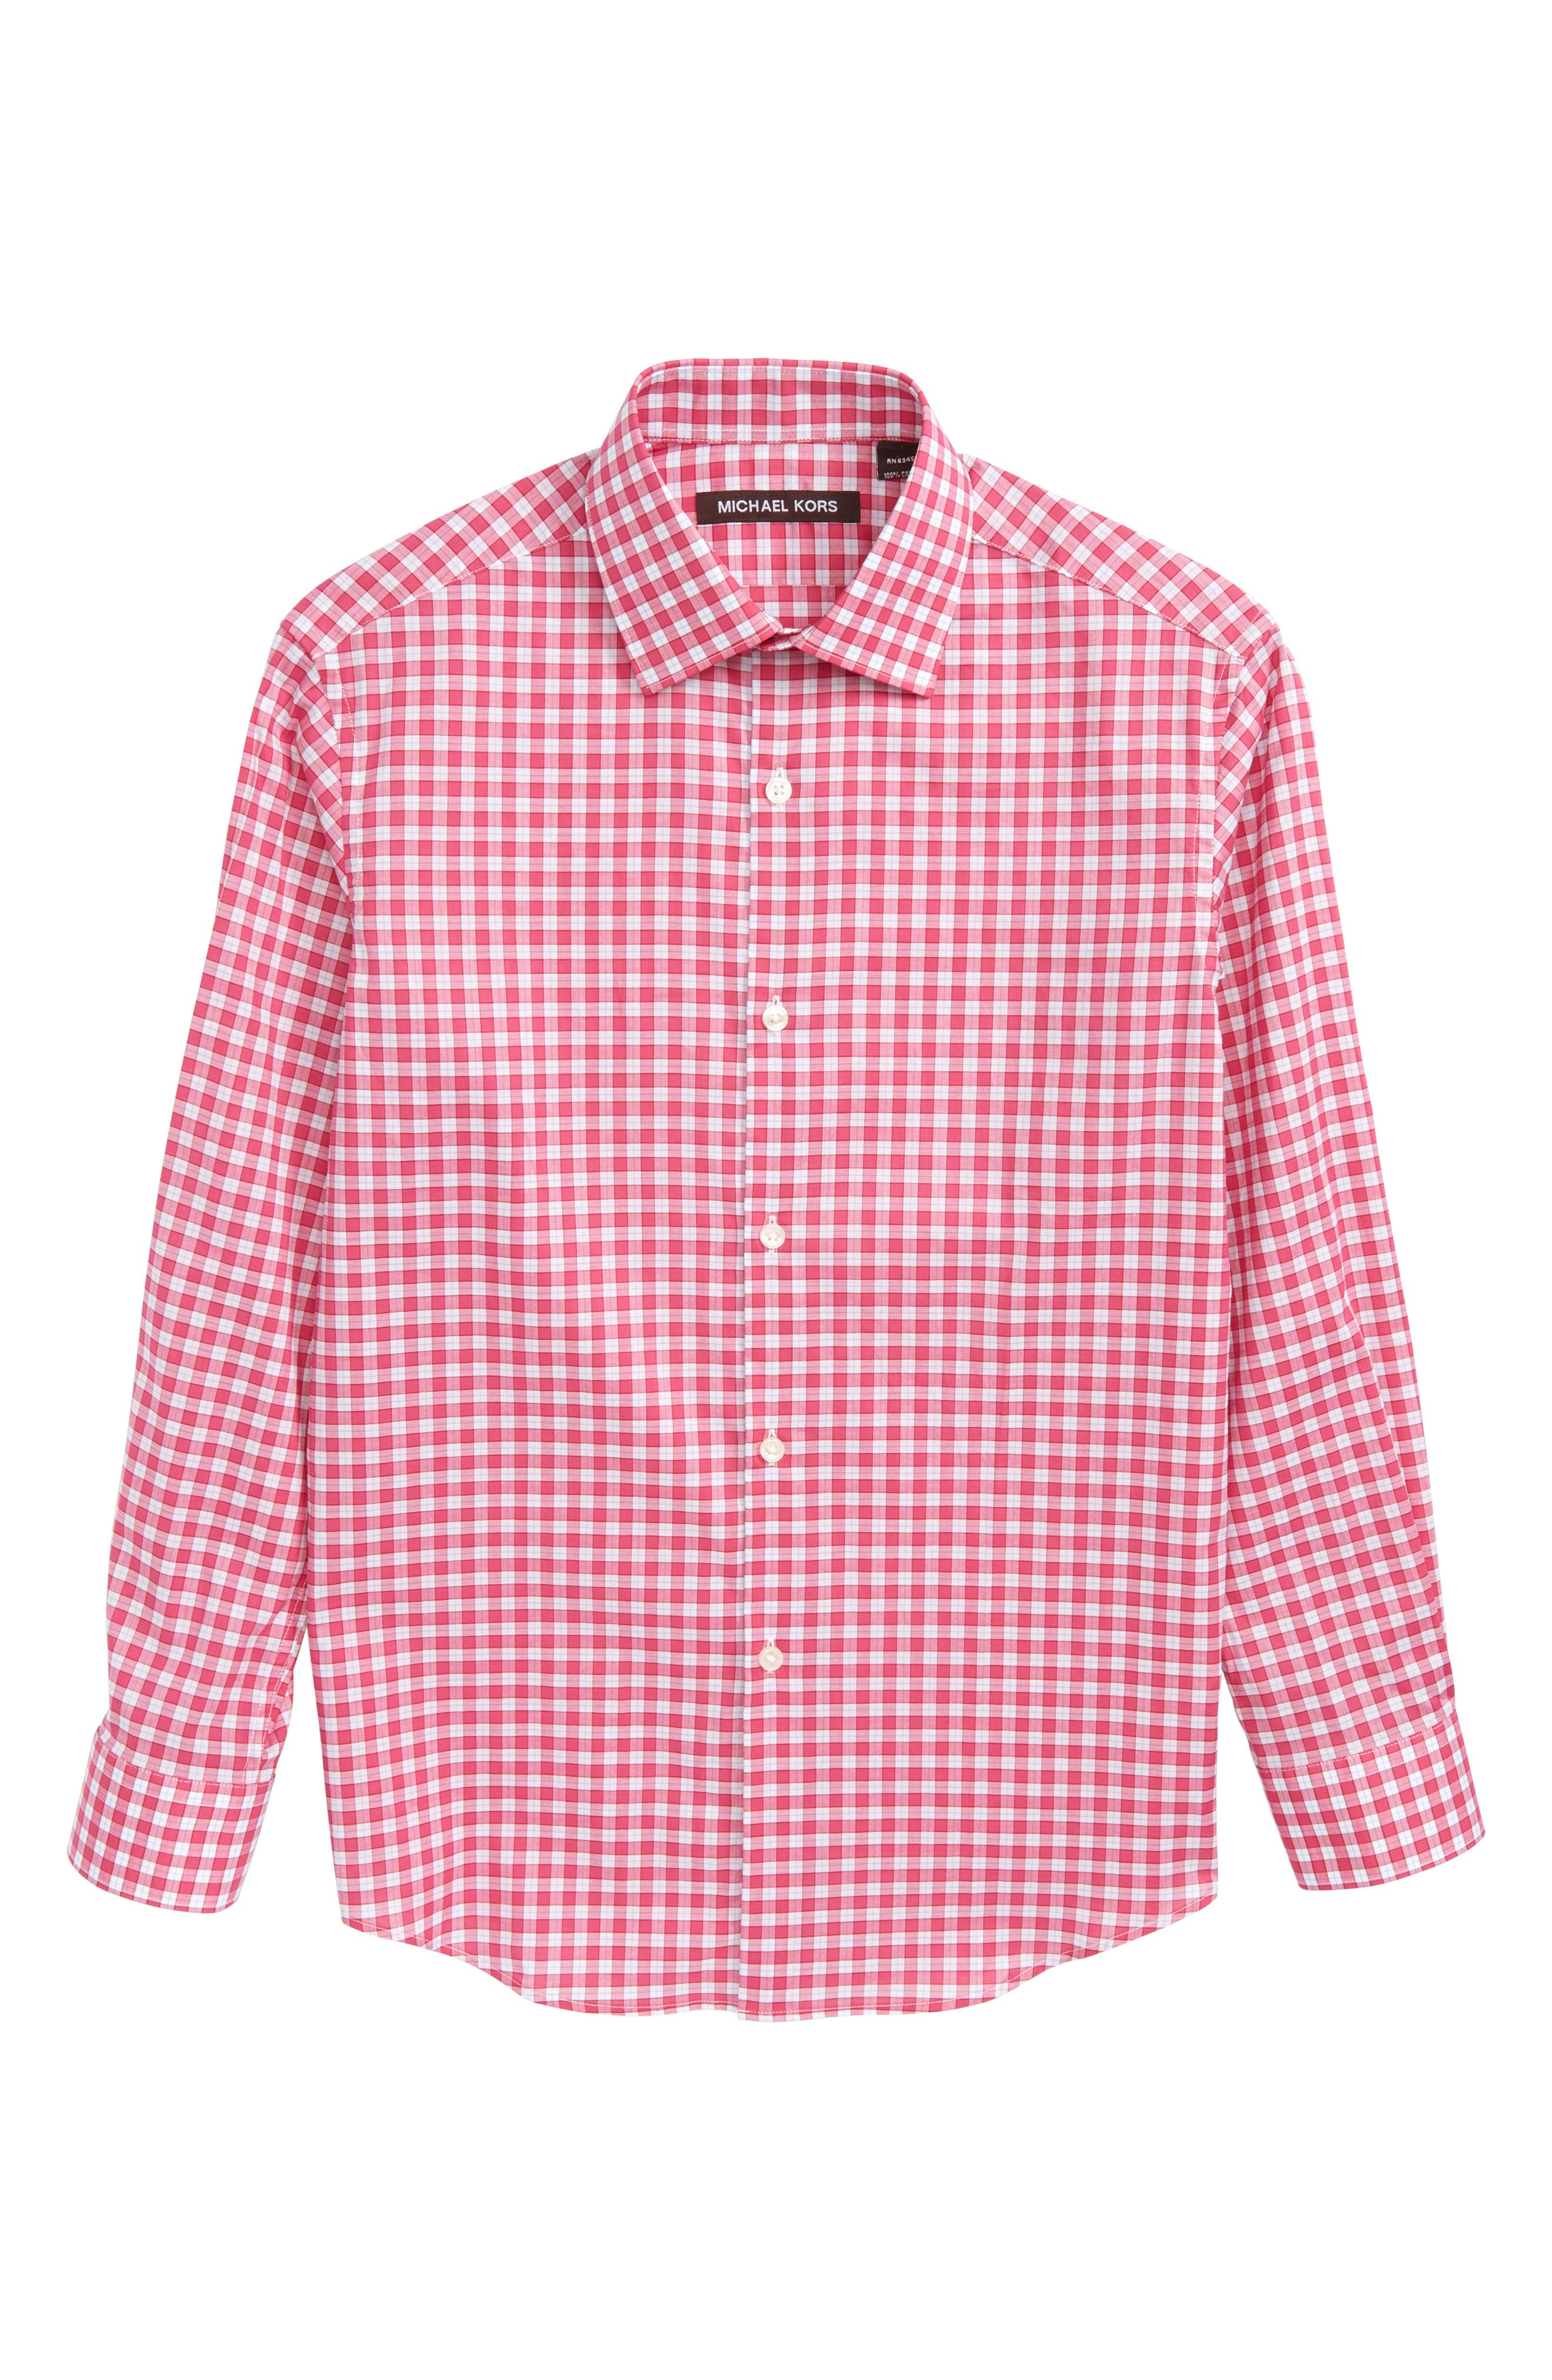 Check Dress Shirt,                             Main thumbnail 1, color,                             Pink/ White